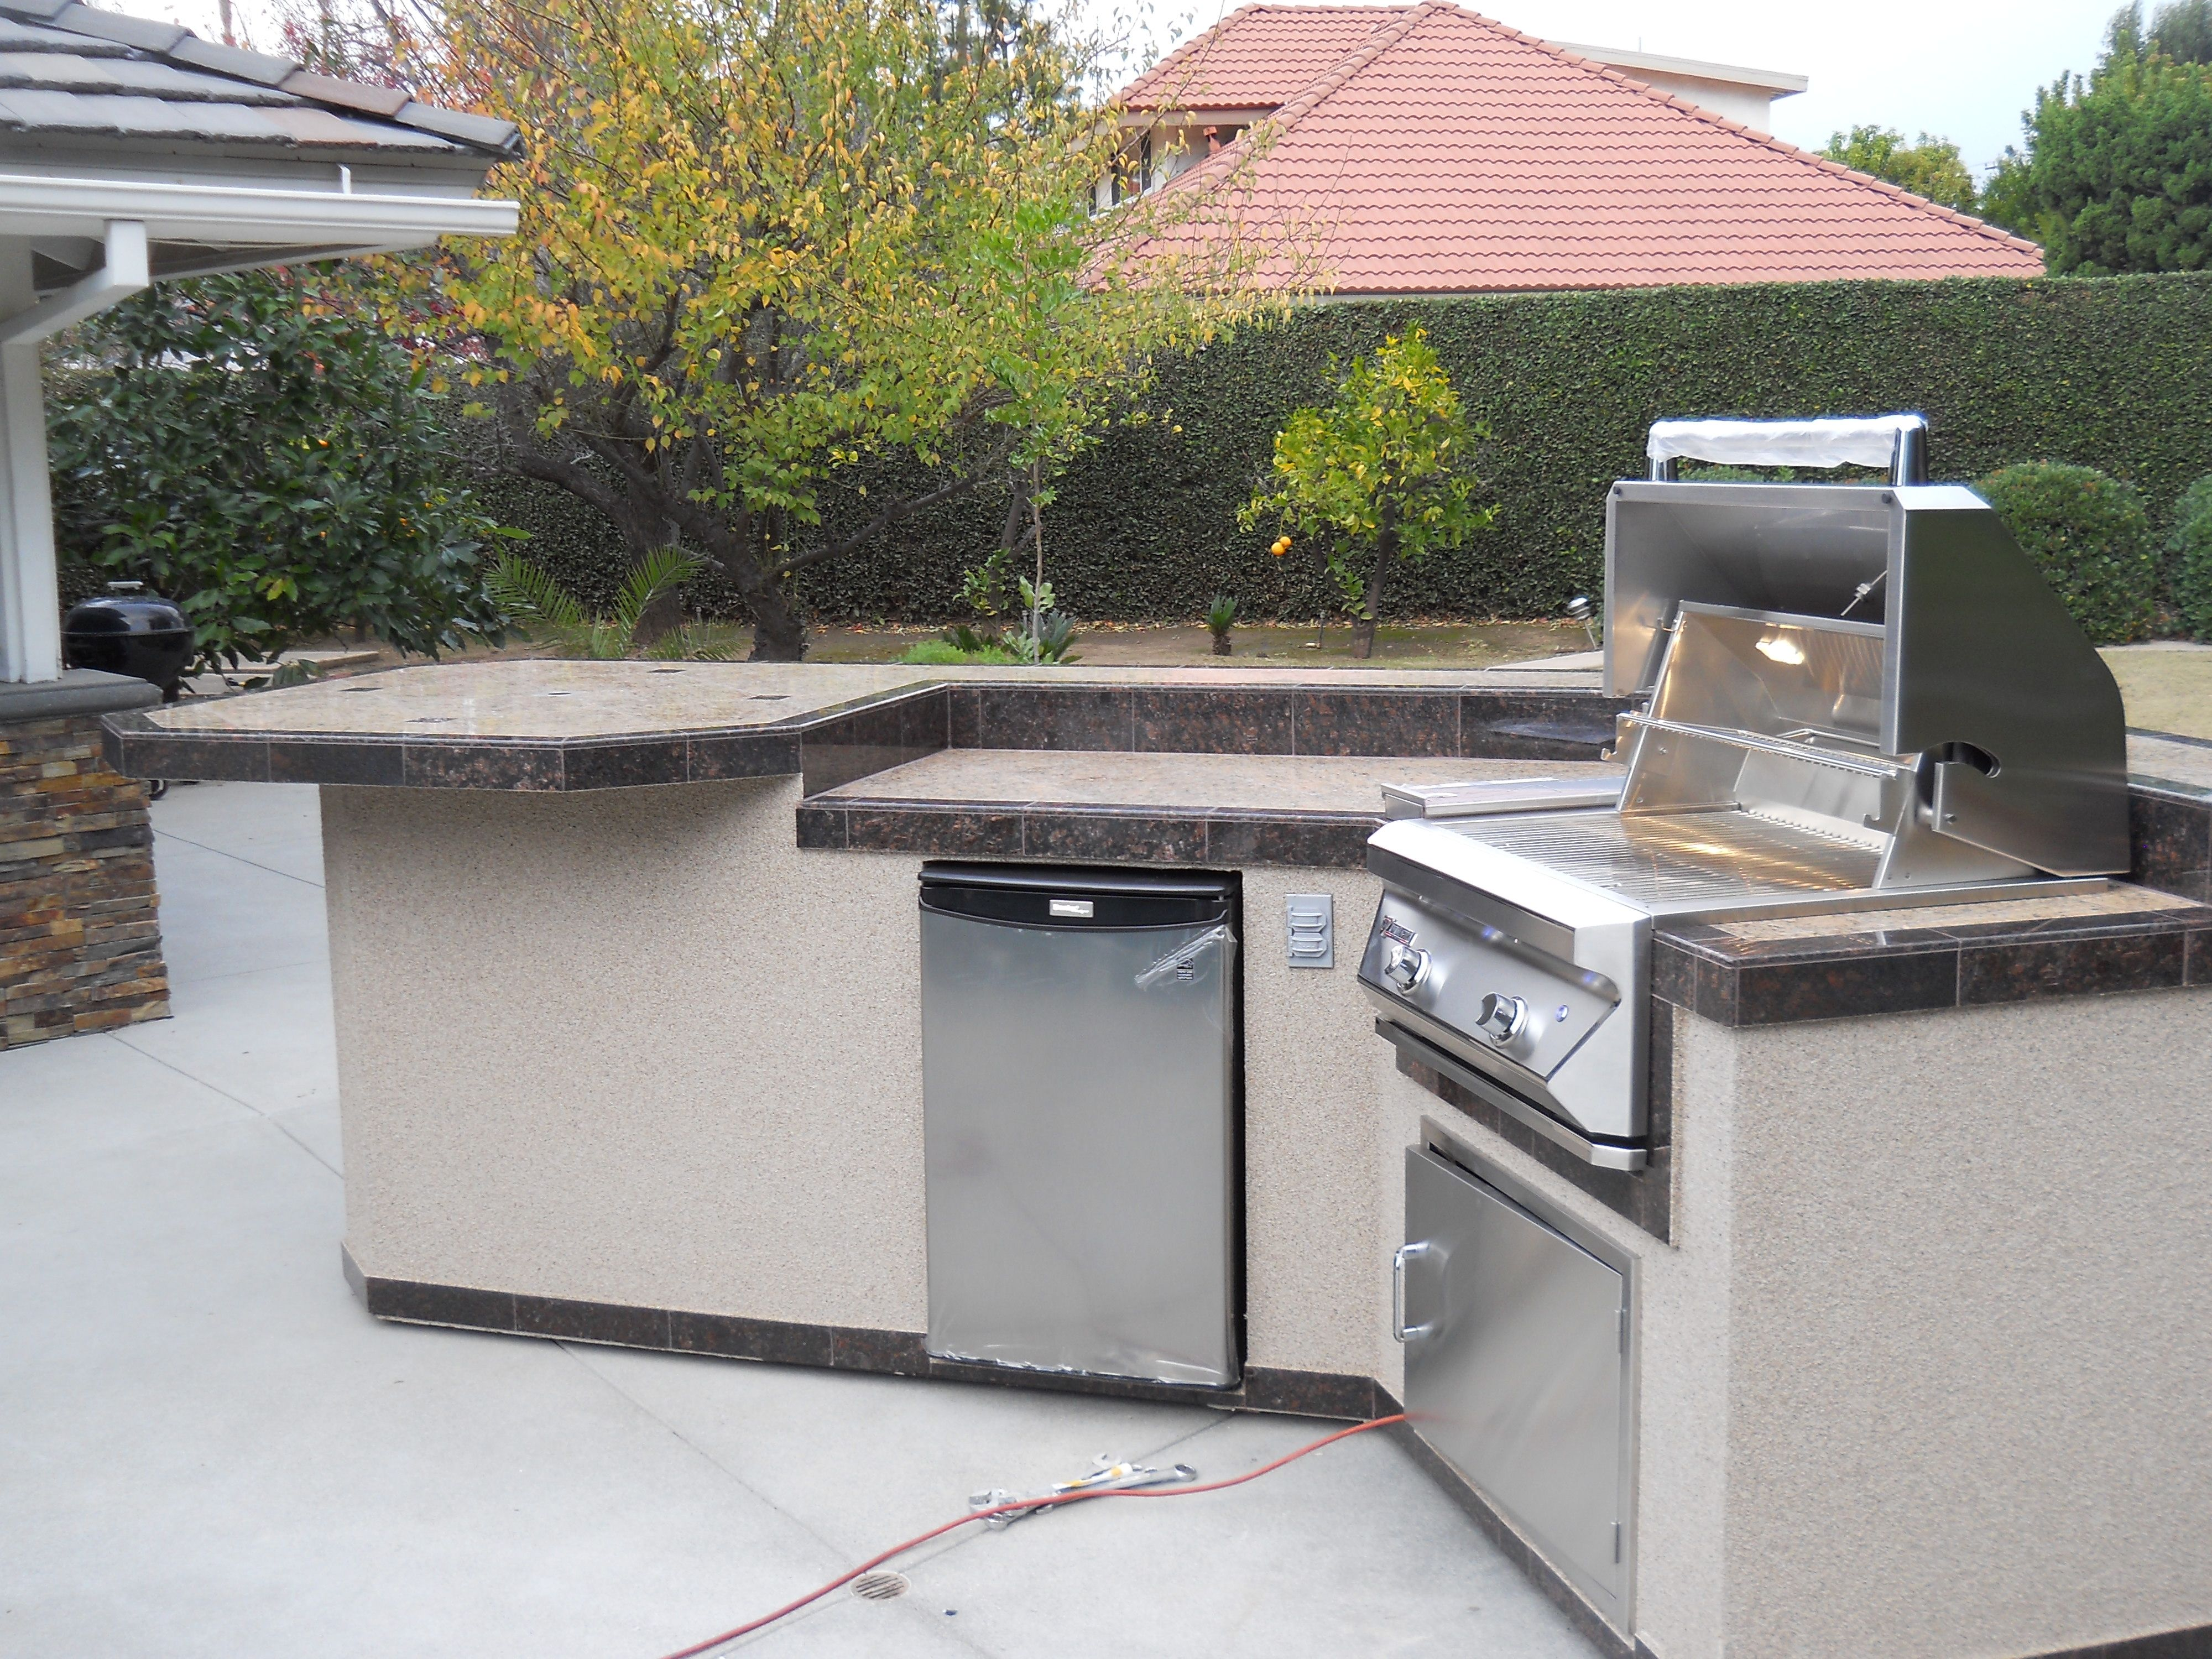 Custom Outdoor Kitchens Wholesale Kitchen Supplies Built Delivered To Orange County